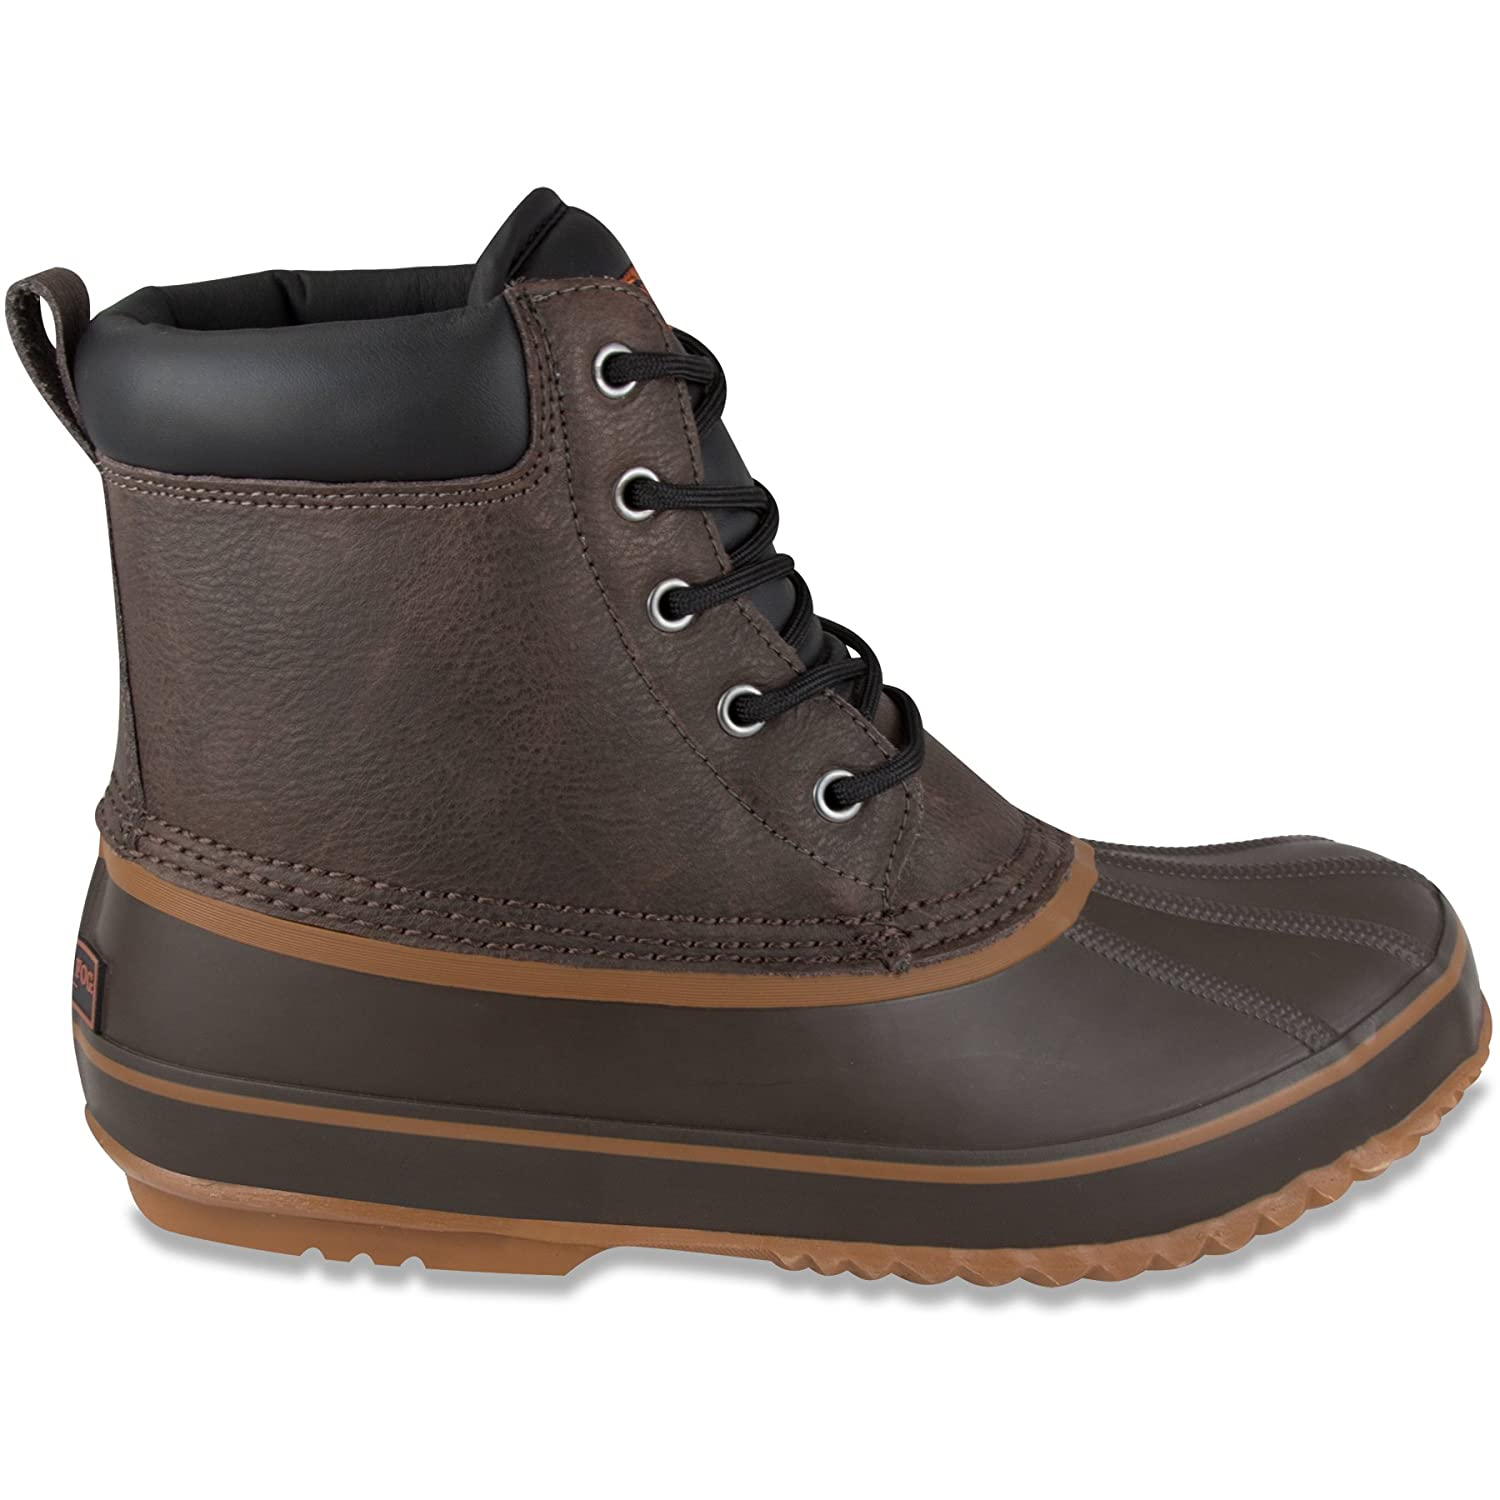 27627be4bb6 London Fog Mens Ashford Waterproof and Insulated Duck Boot